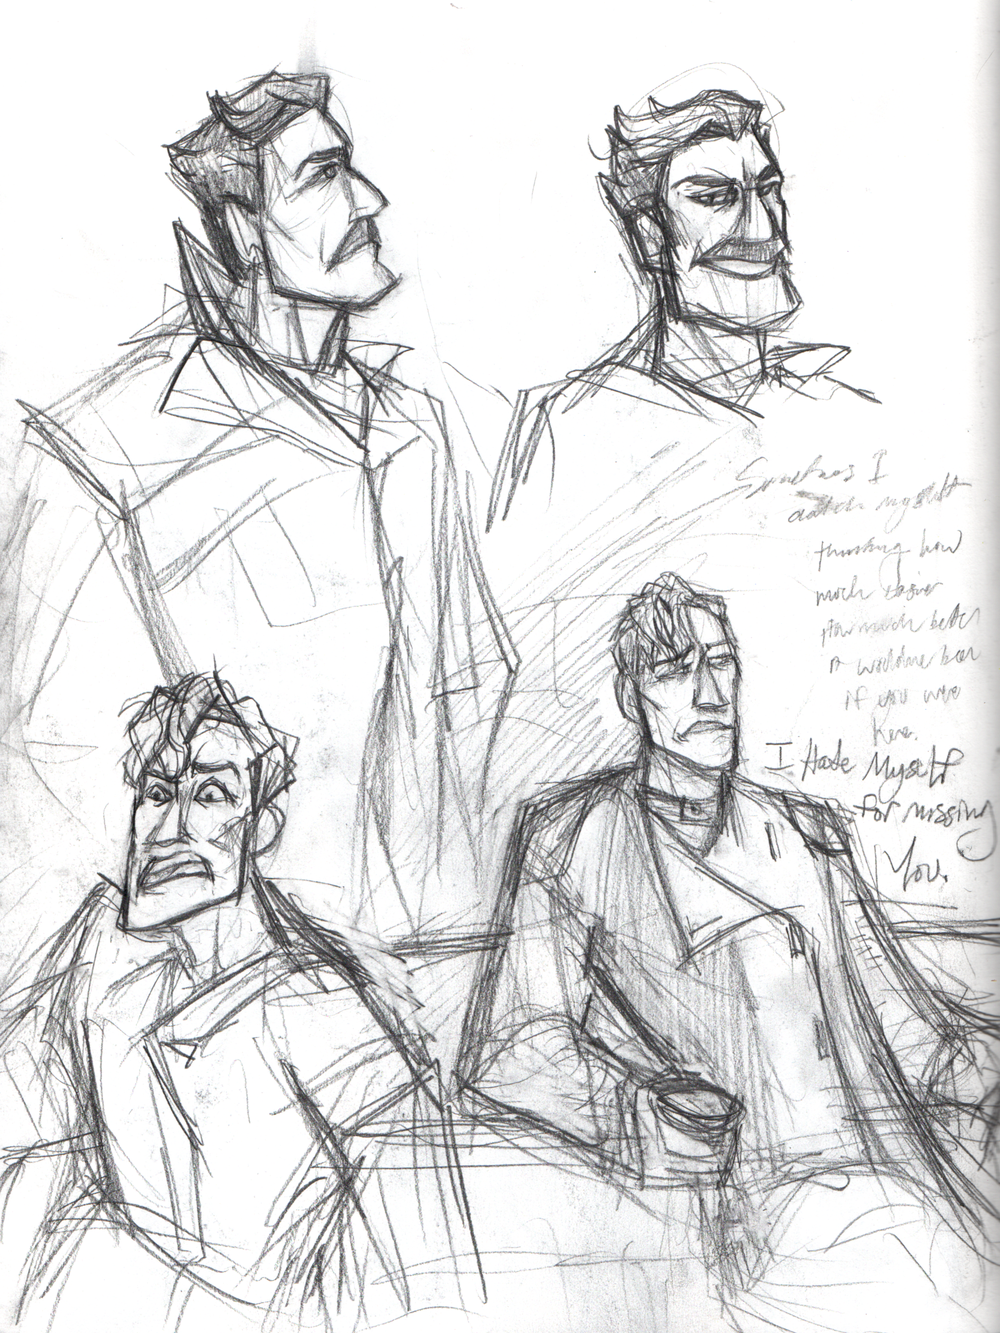 Taragon and Tetch sketchbook page